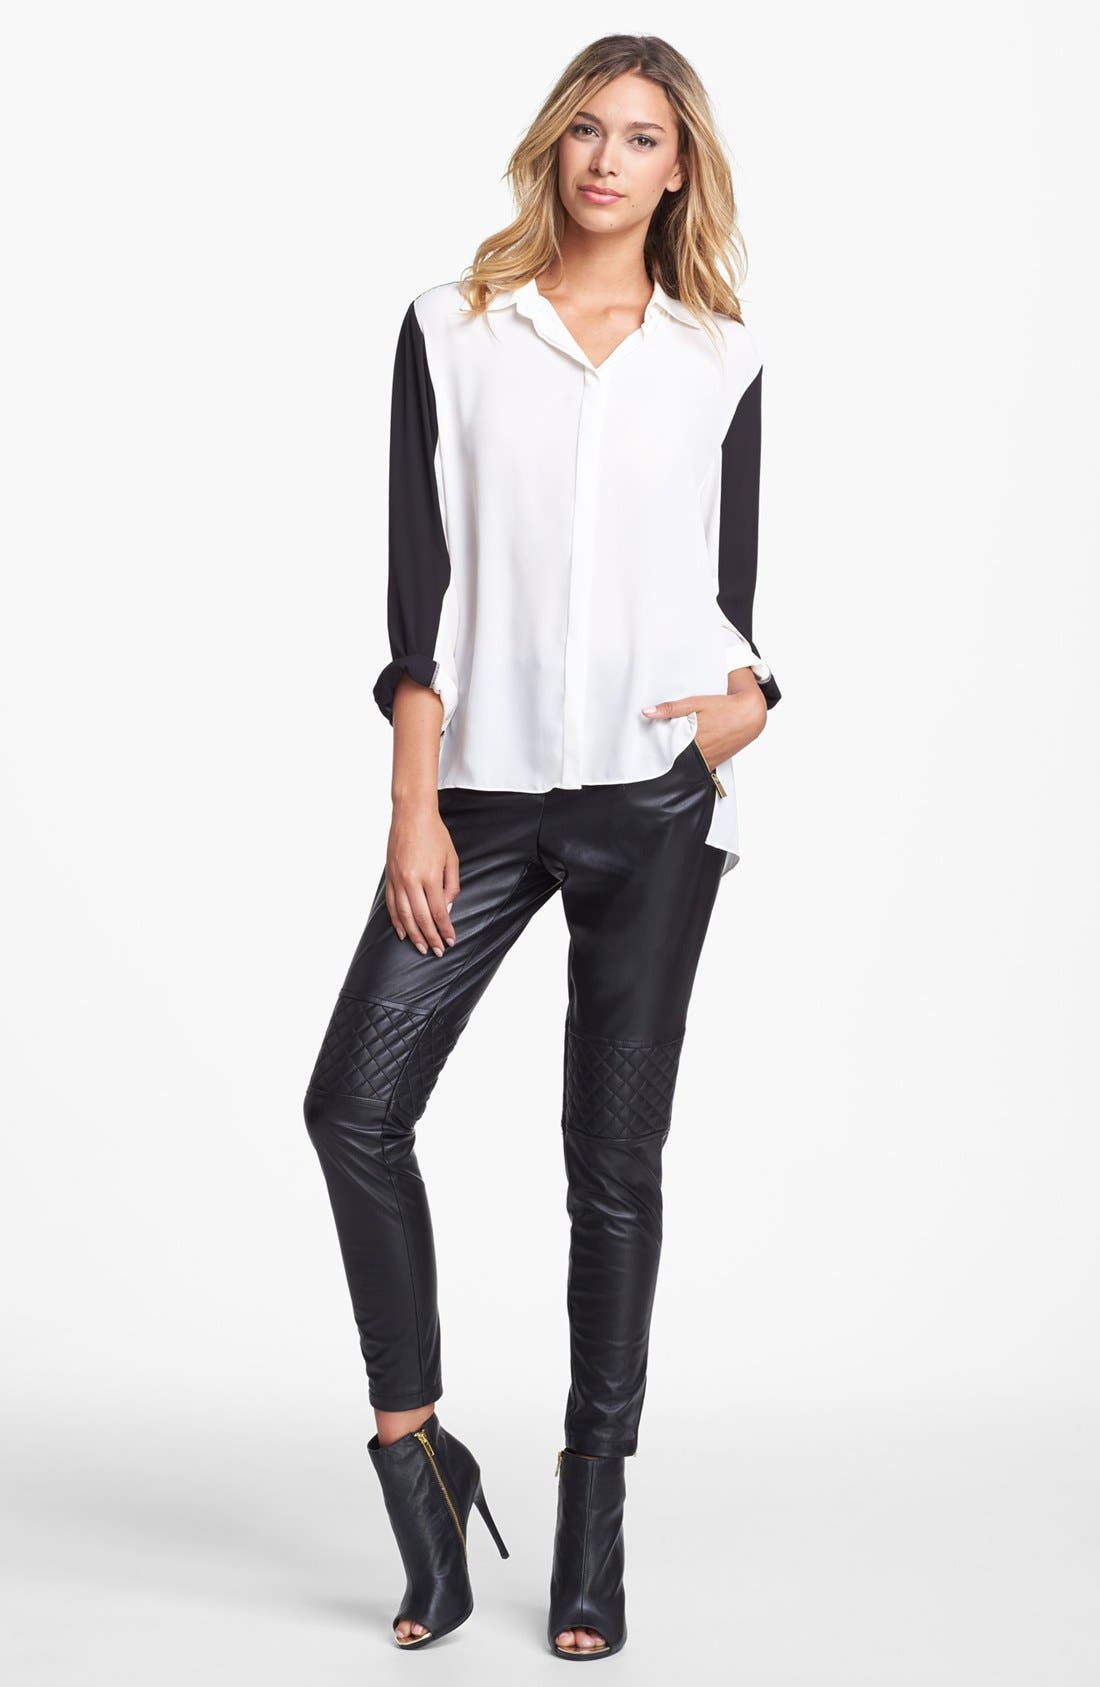 Alternate Image 1 Selected - Vince Camuto Colorblock High/Low Blouse (Online Only)